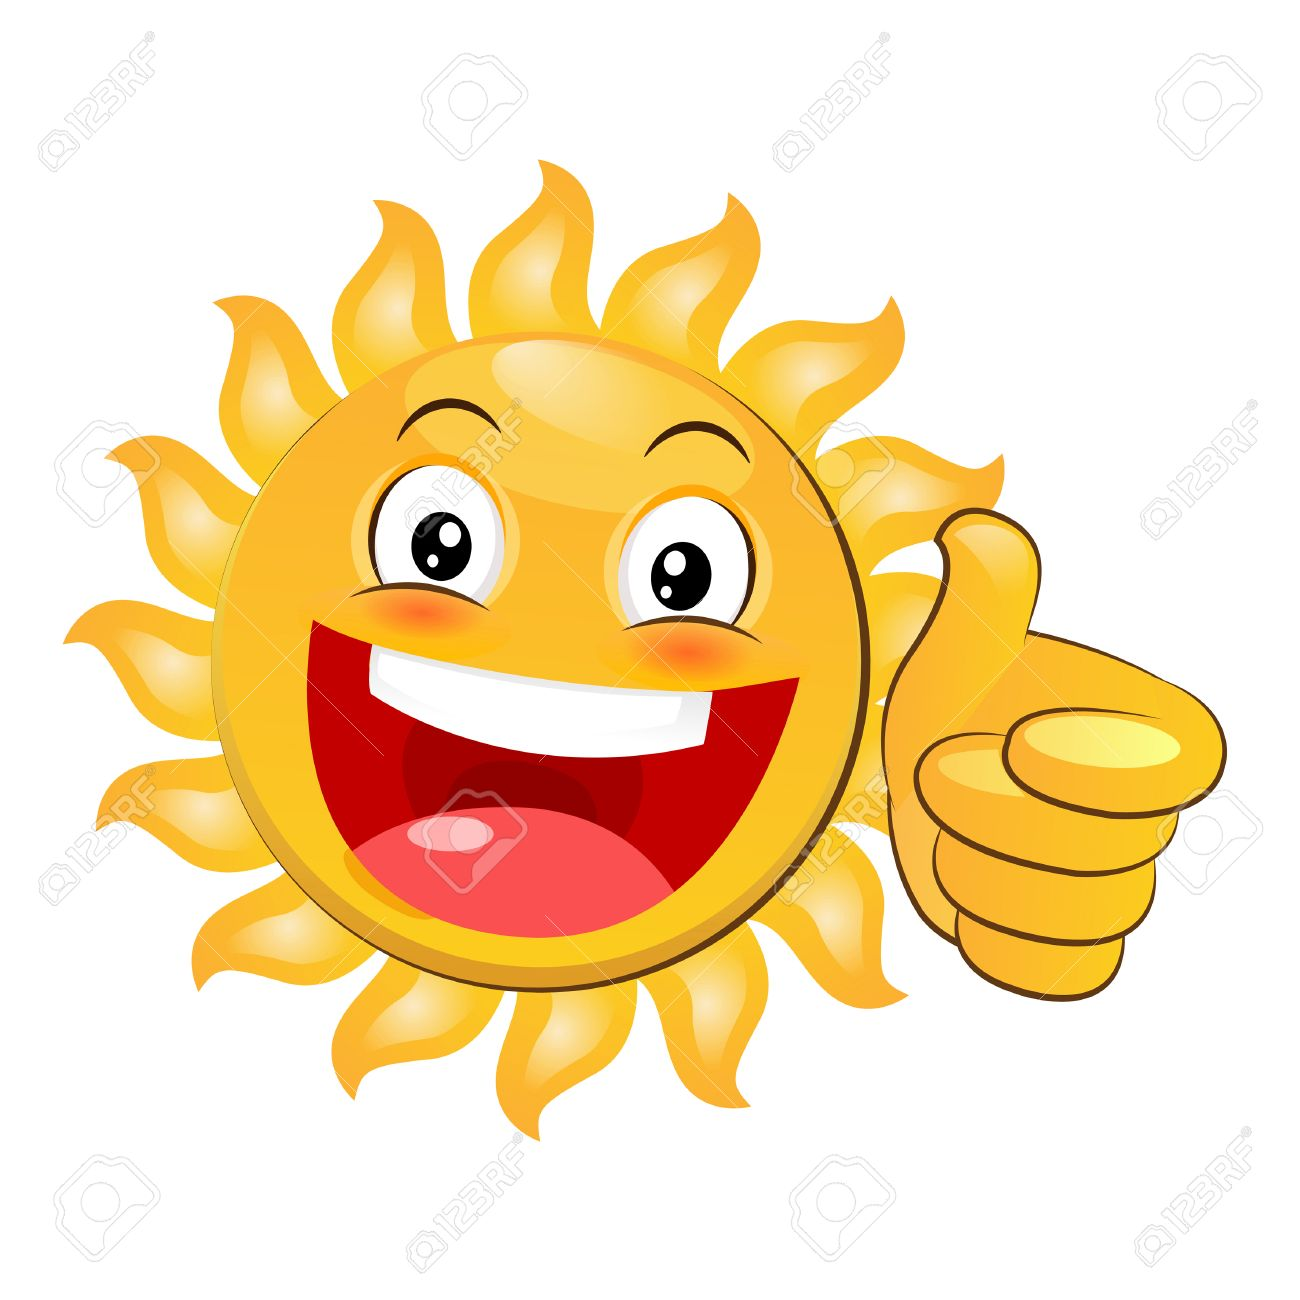 smiling yellow happy sun giving a thumbs up. cartoon vector isolated